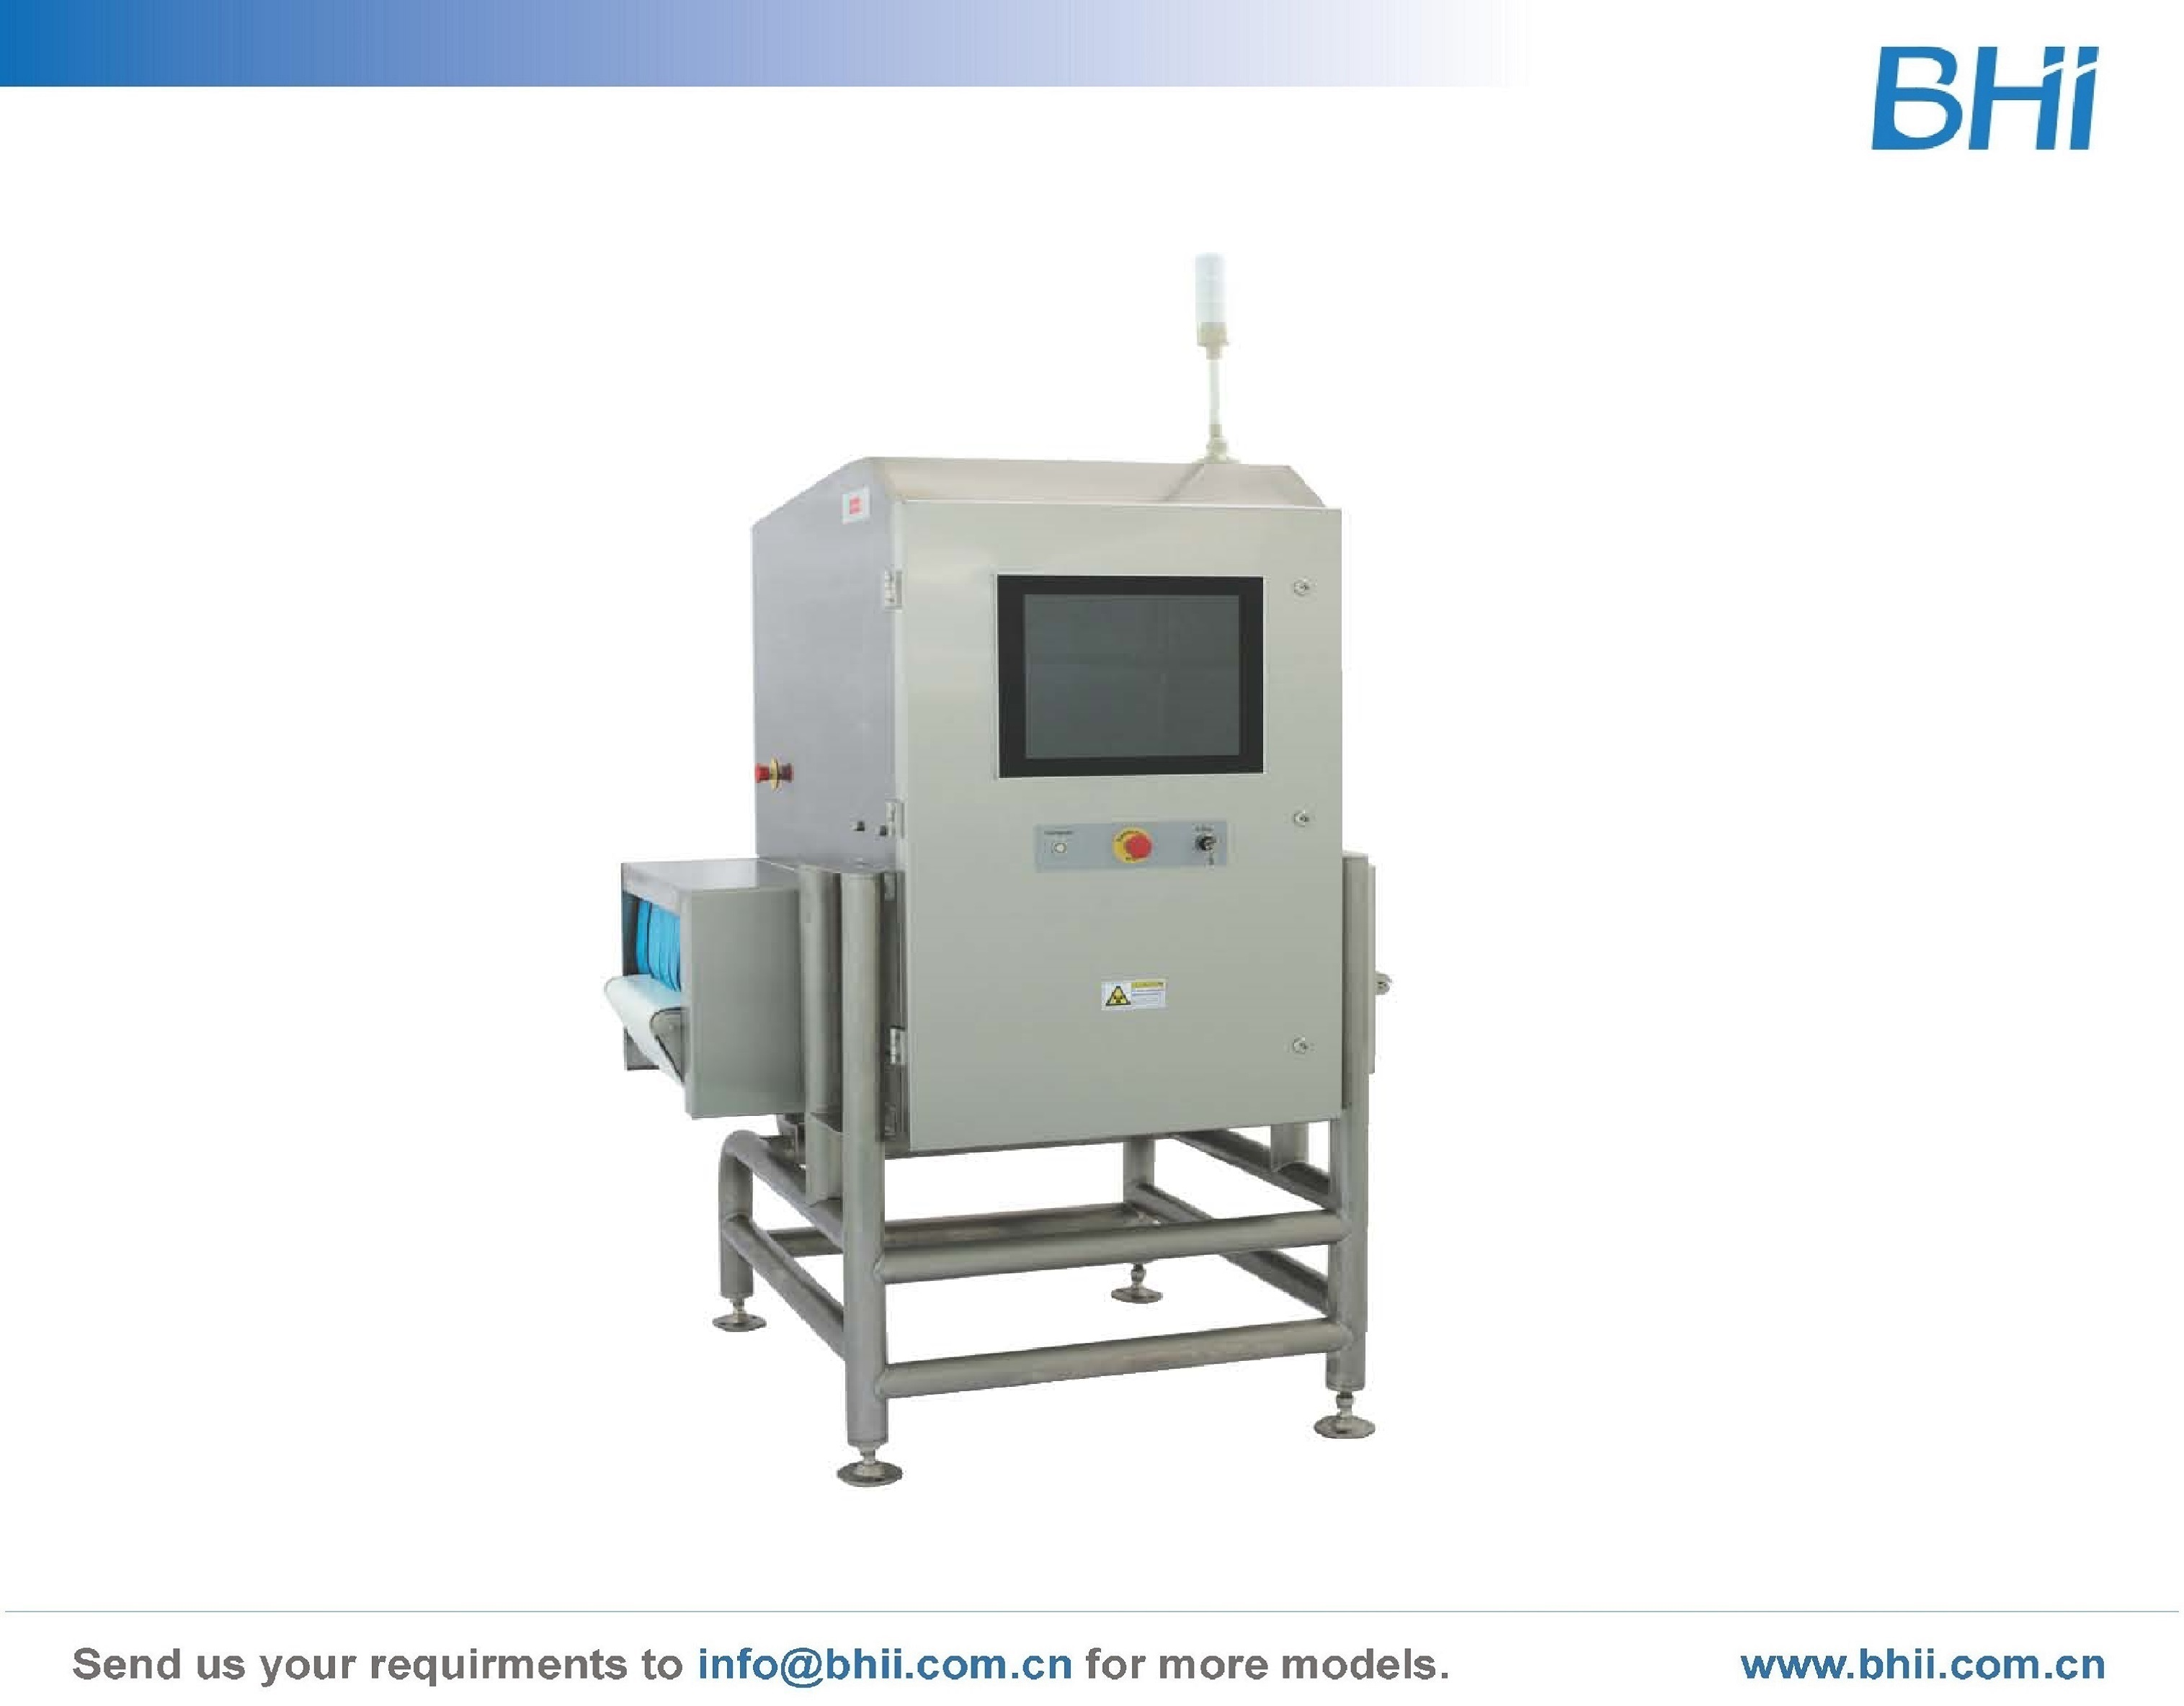 Bulk Product X-ray Inspection Systm